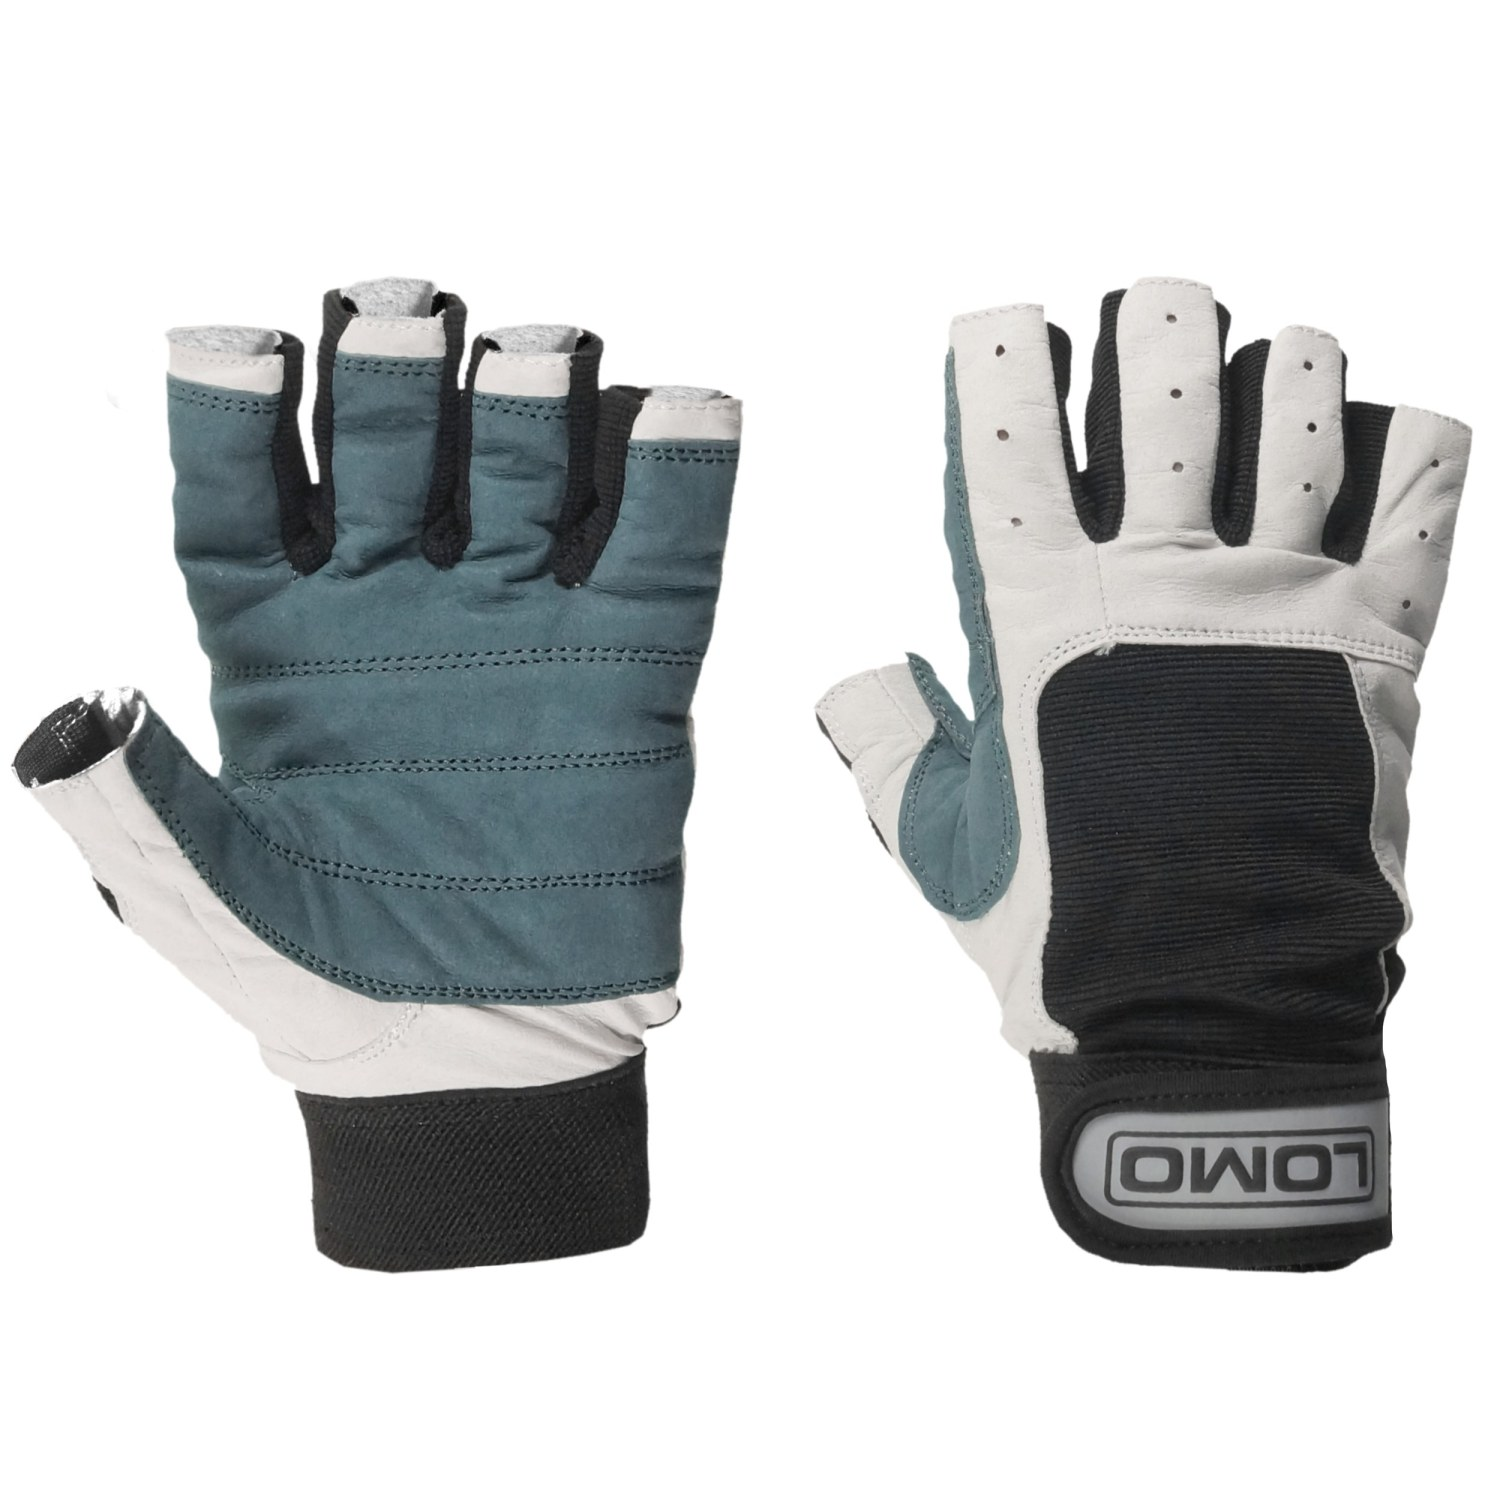 Gloves With Fingertips Out: Sailing Gloves